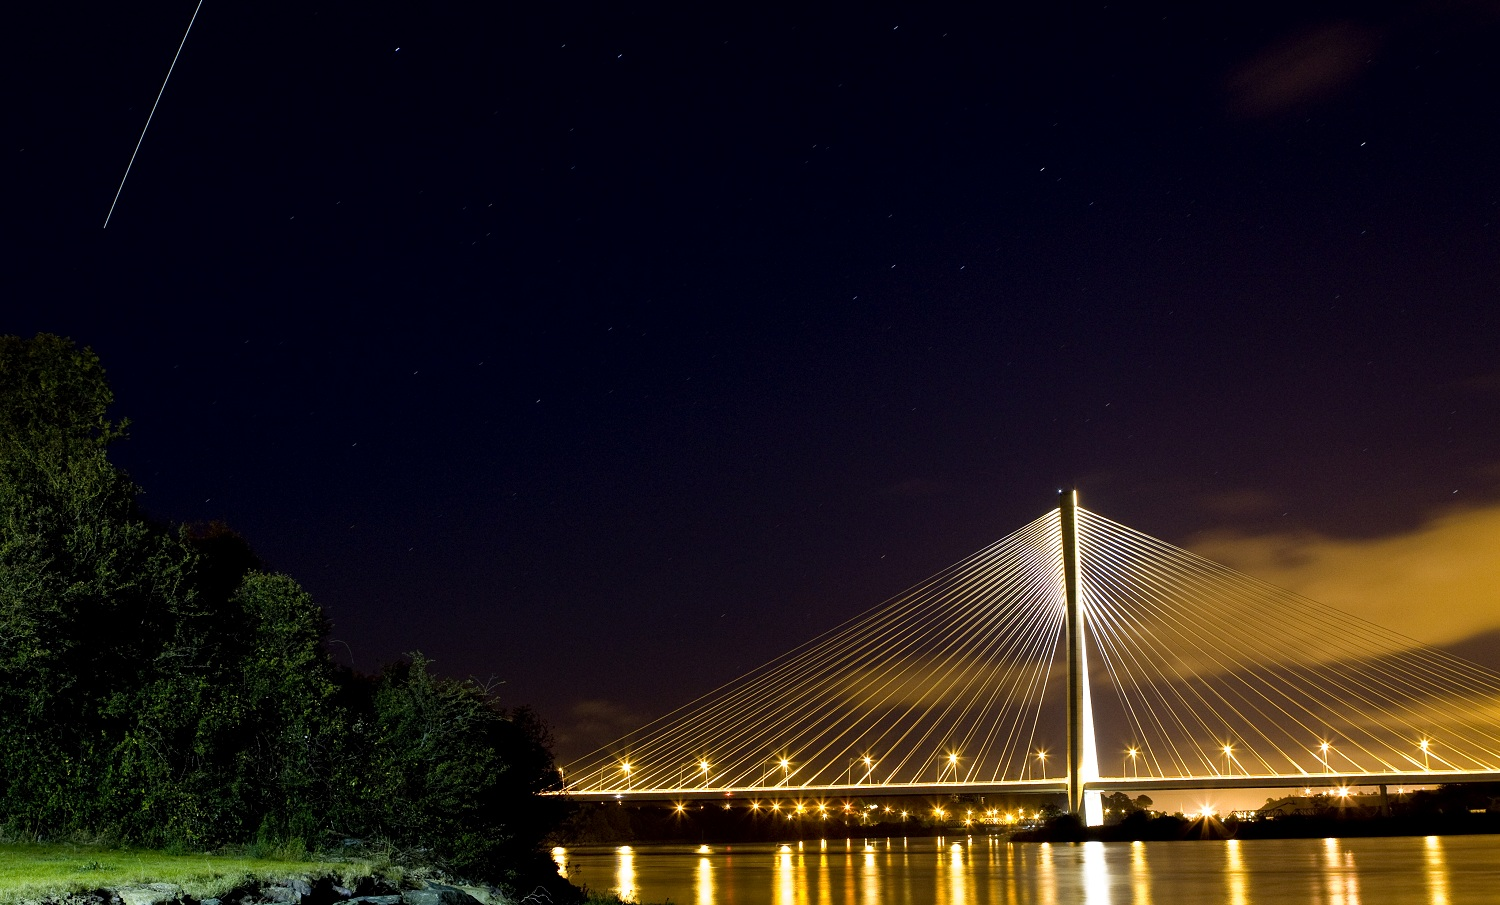 International Space Station Over Waterford Bridge - ISS Waterford Bridge Photo